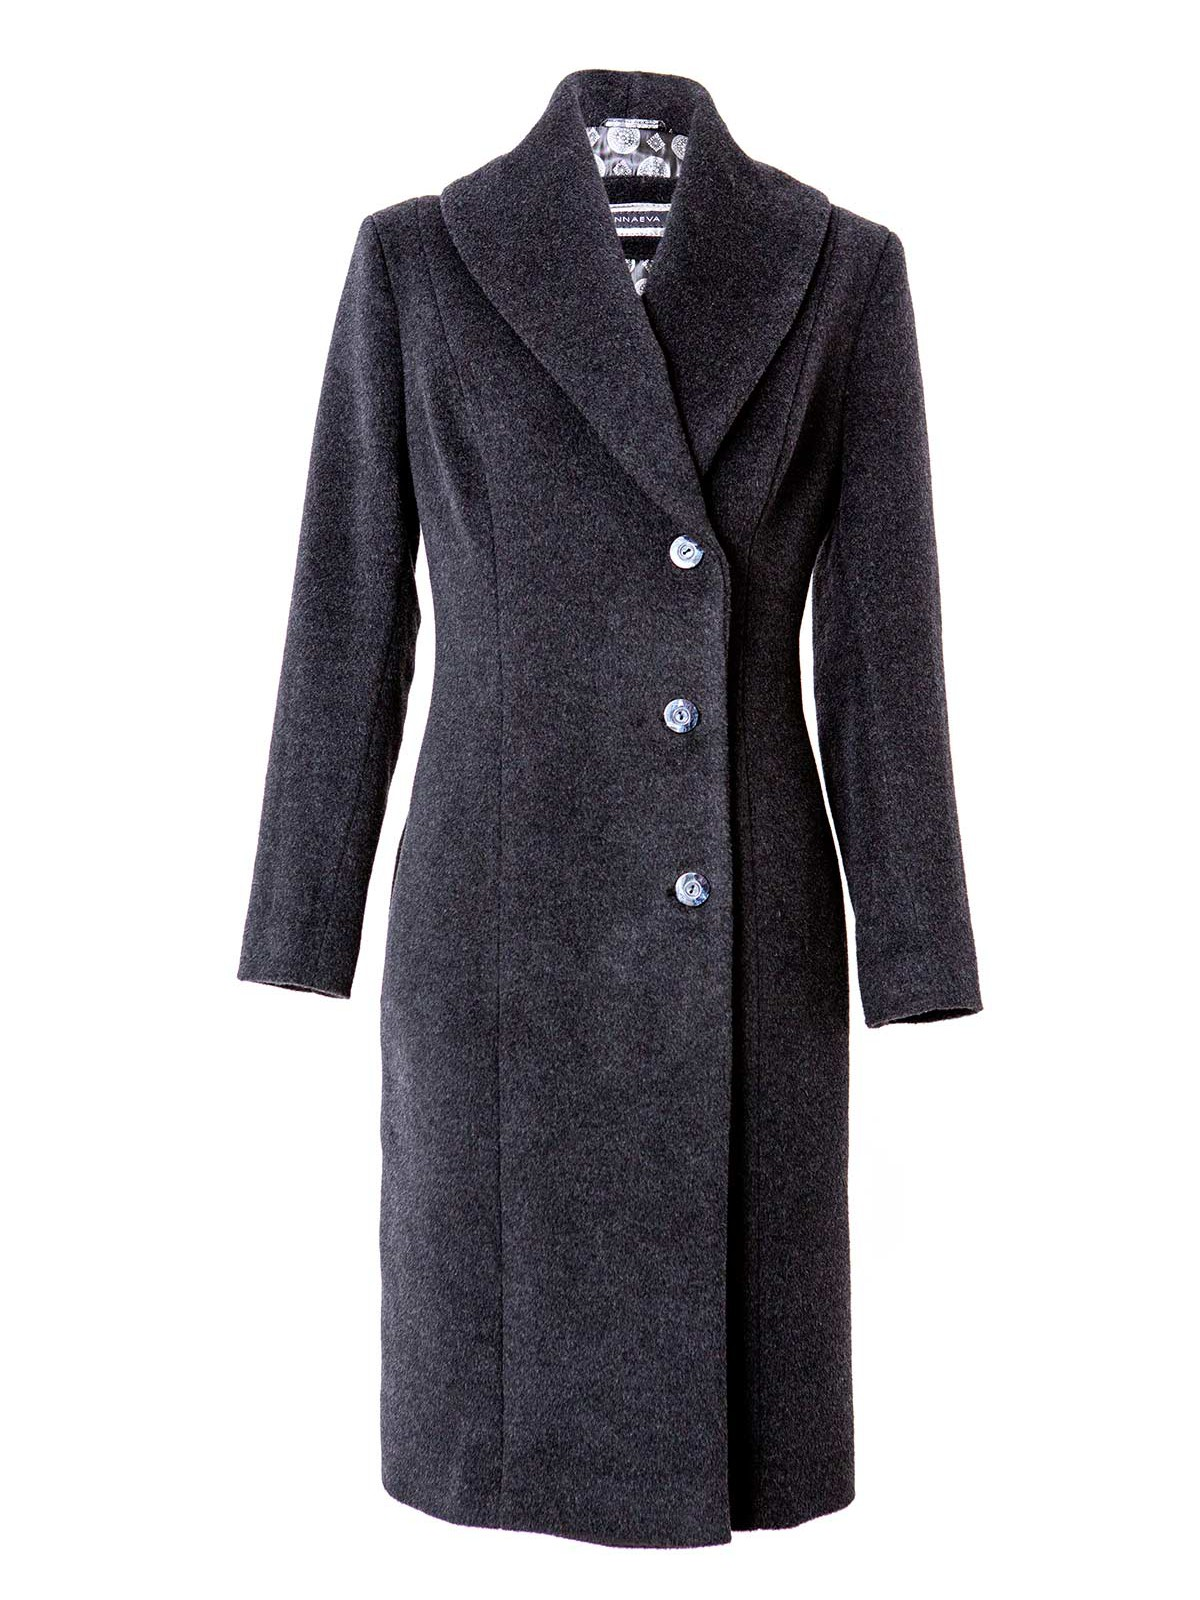 Angora wool winter coat